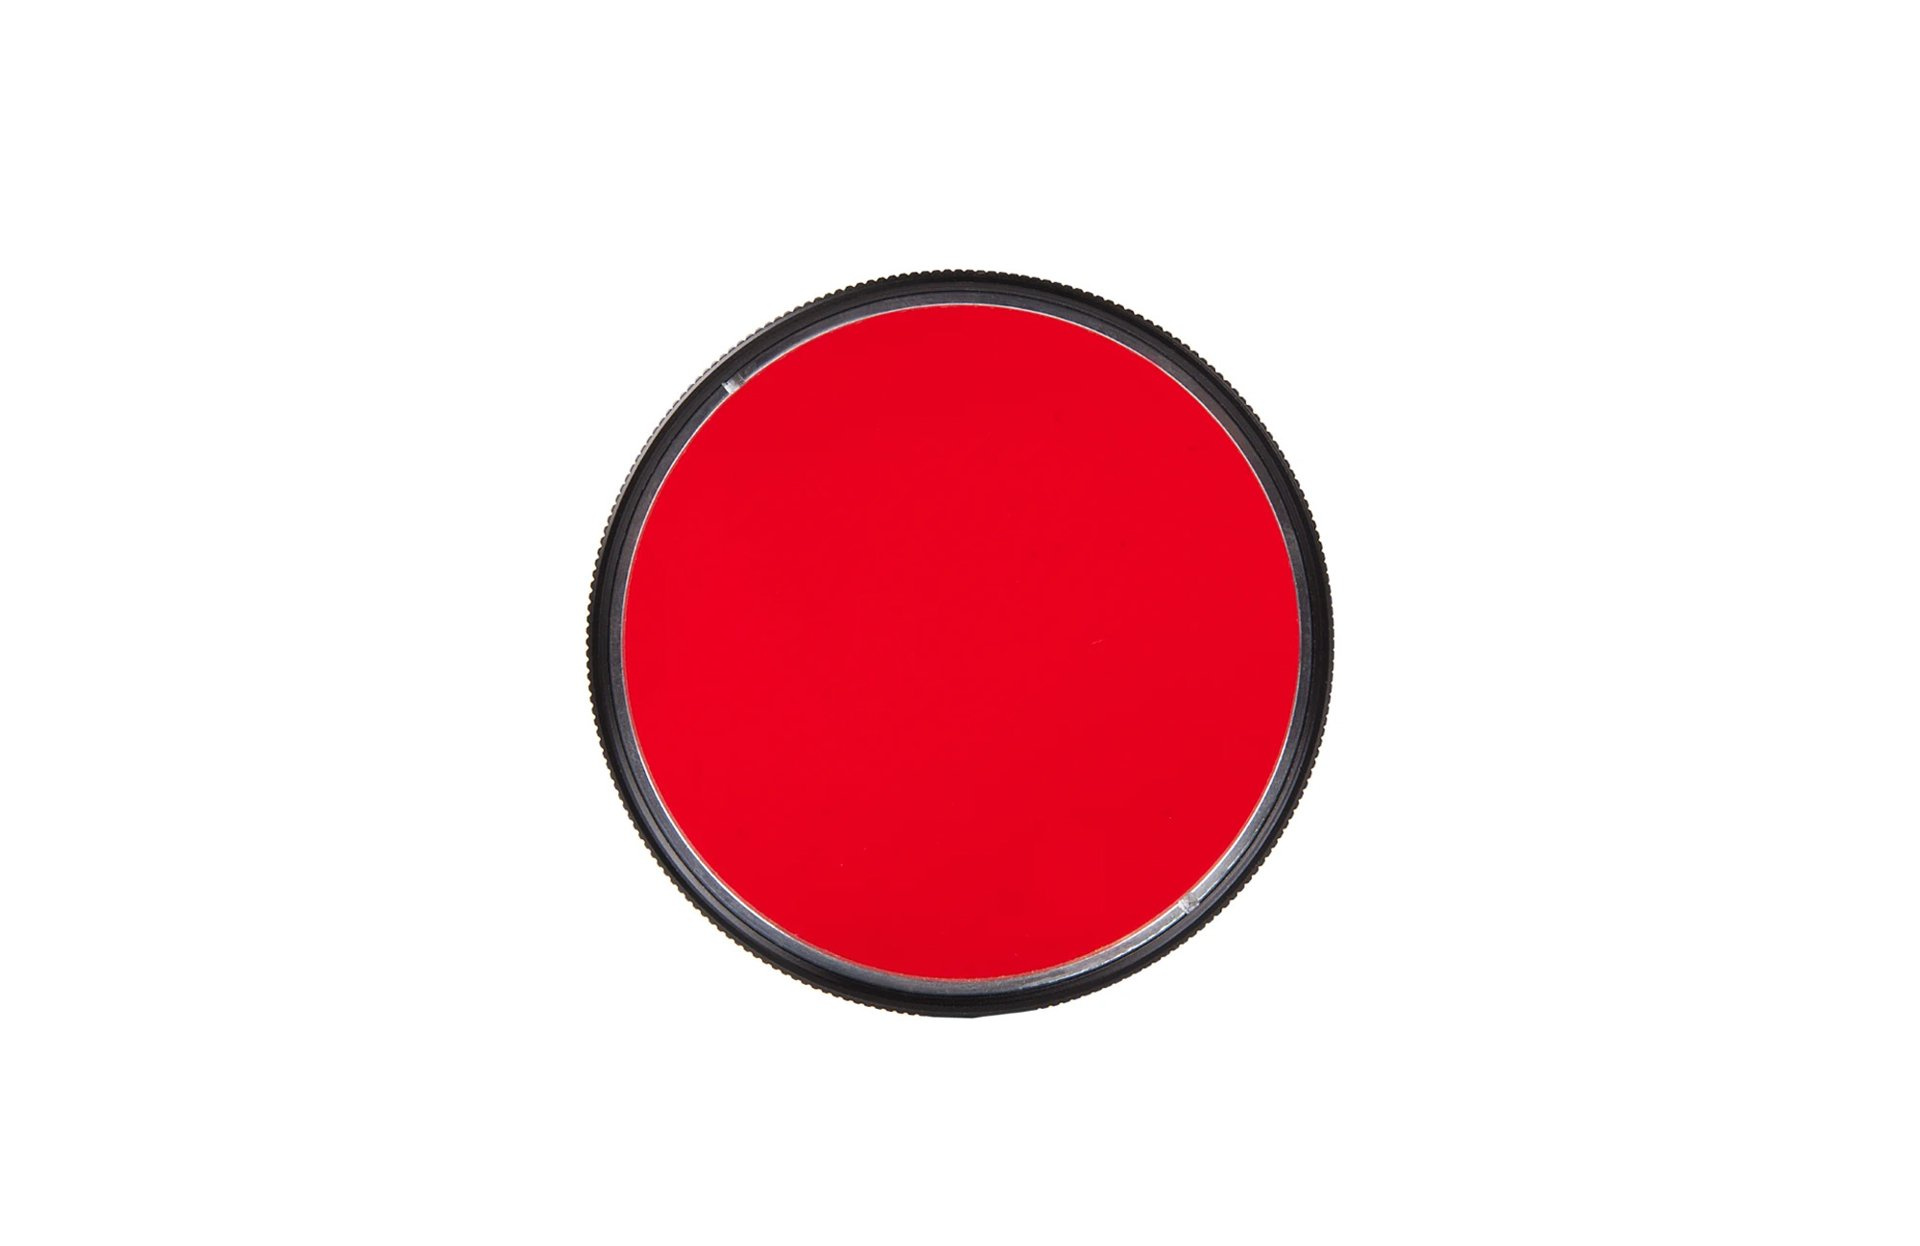 Picture of ACEBEAM FR10 Green/Red Flashlight Filter and White Diffuser